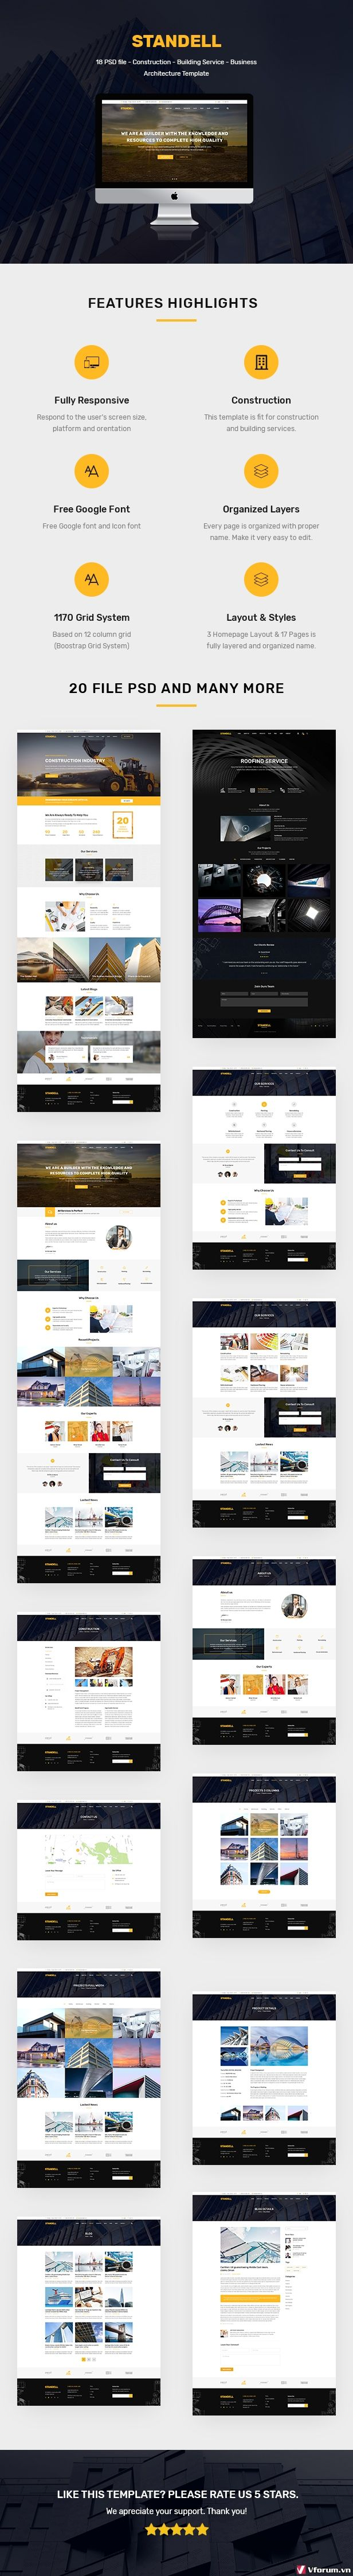 Standell | Multipurpose Construction PSD Template - 1